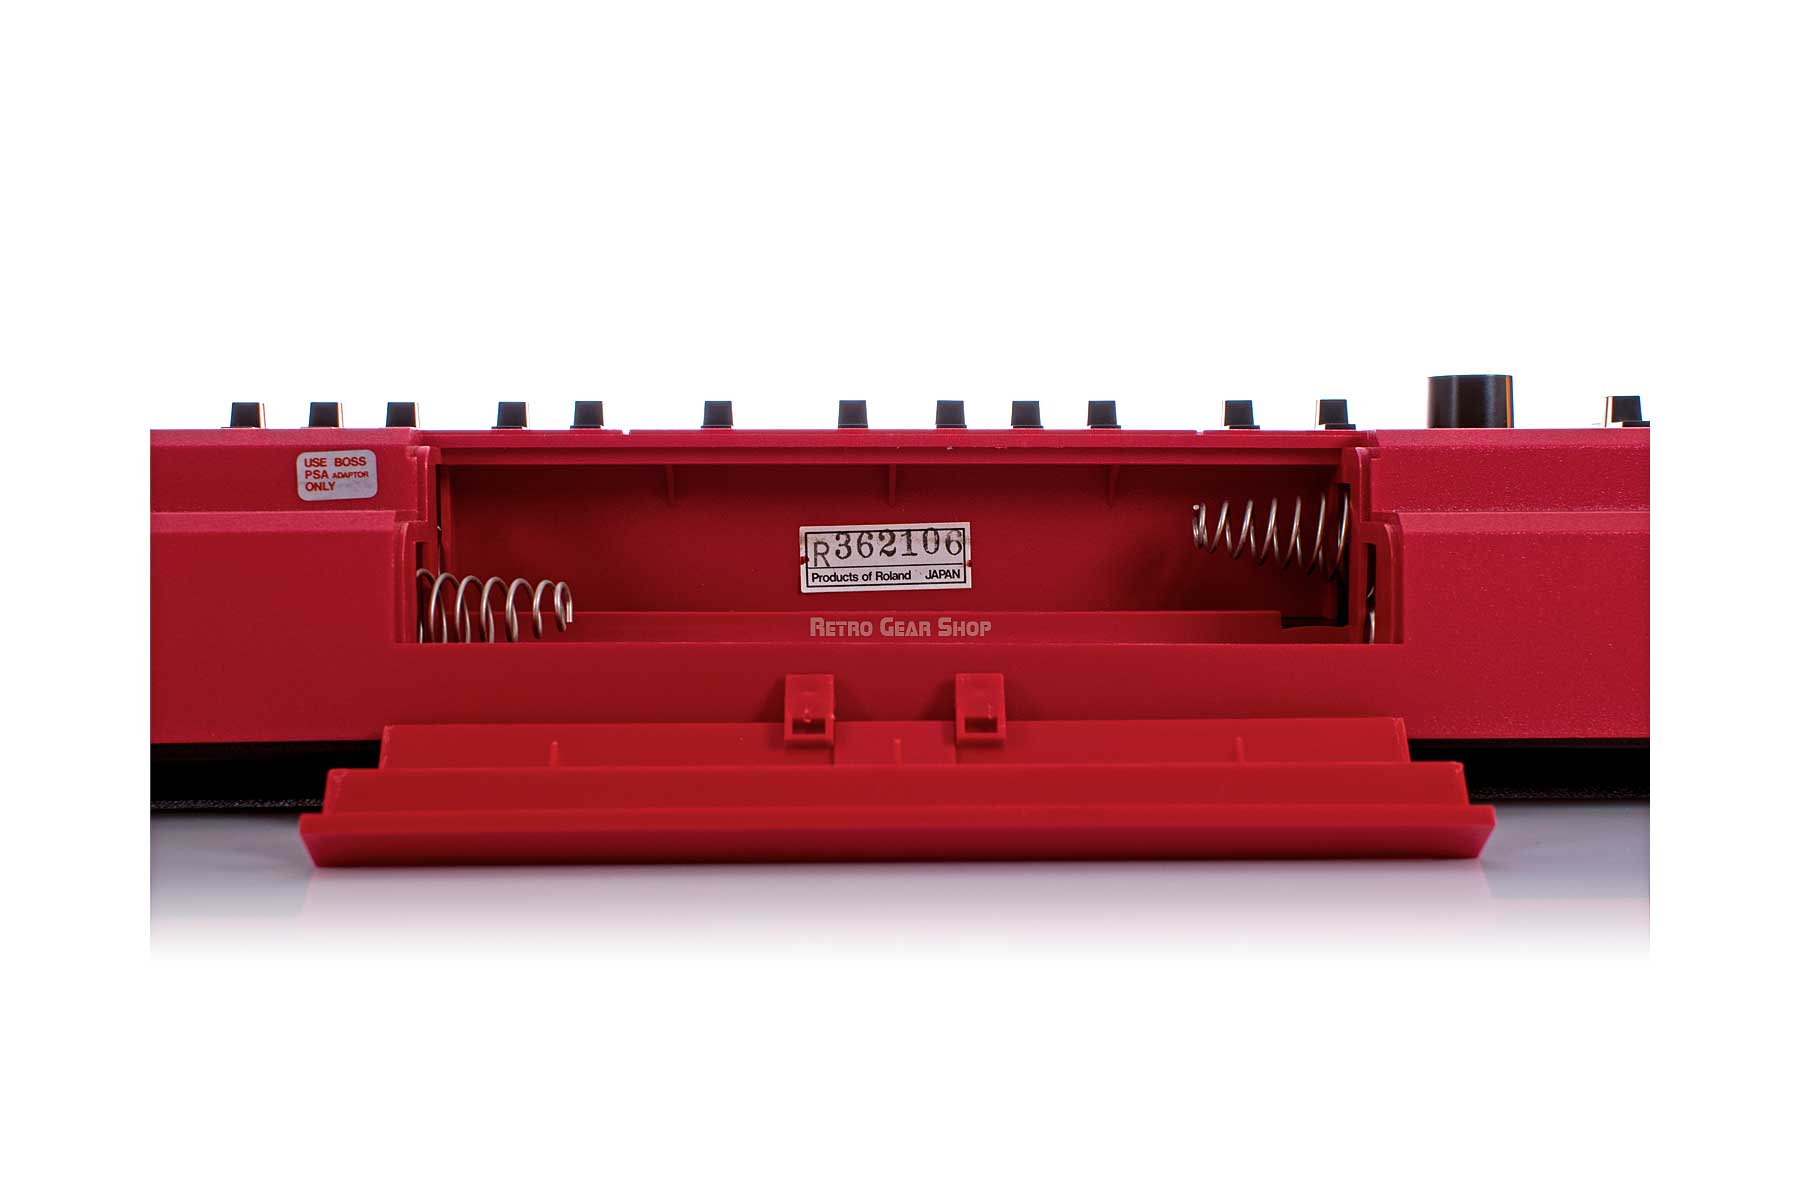 Roland SH-101 Red Battery Compartment #362106